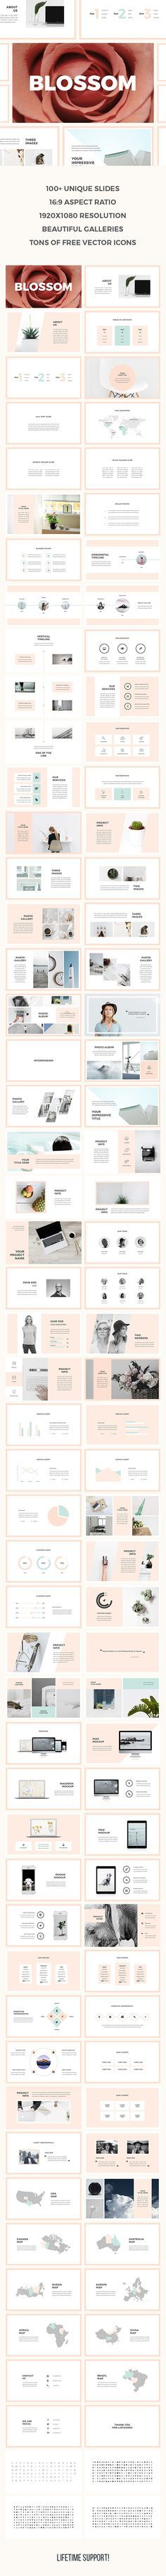 """Blossom PowerPoint Template  <a class=""""pintag searchlink"""" data-query=""""%23photo"""" data-type=""""hashtag"""" href=""""/search/?q=%23photo&rs=hashtag"""" rel=""""nofollow"""" title=""""#photo search Pinterest"""">#photo</a> album <a class=""""pintag searchlink"""" data-query=""""%23ppt"""" data-type=""""hashtag"""" href=""""/search/?q=%23ppt&rs=hashtag"""" rel=""""nofollow"""" title=""""#ppt search Pinterest"""">#ppt</a> • Download ➝…"""